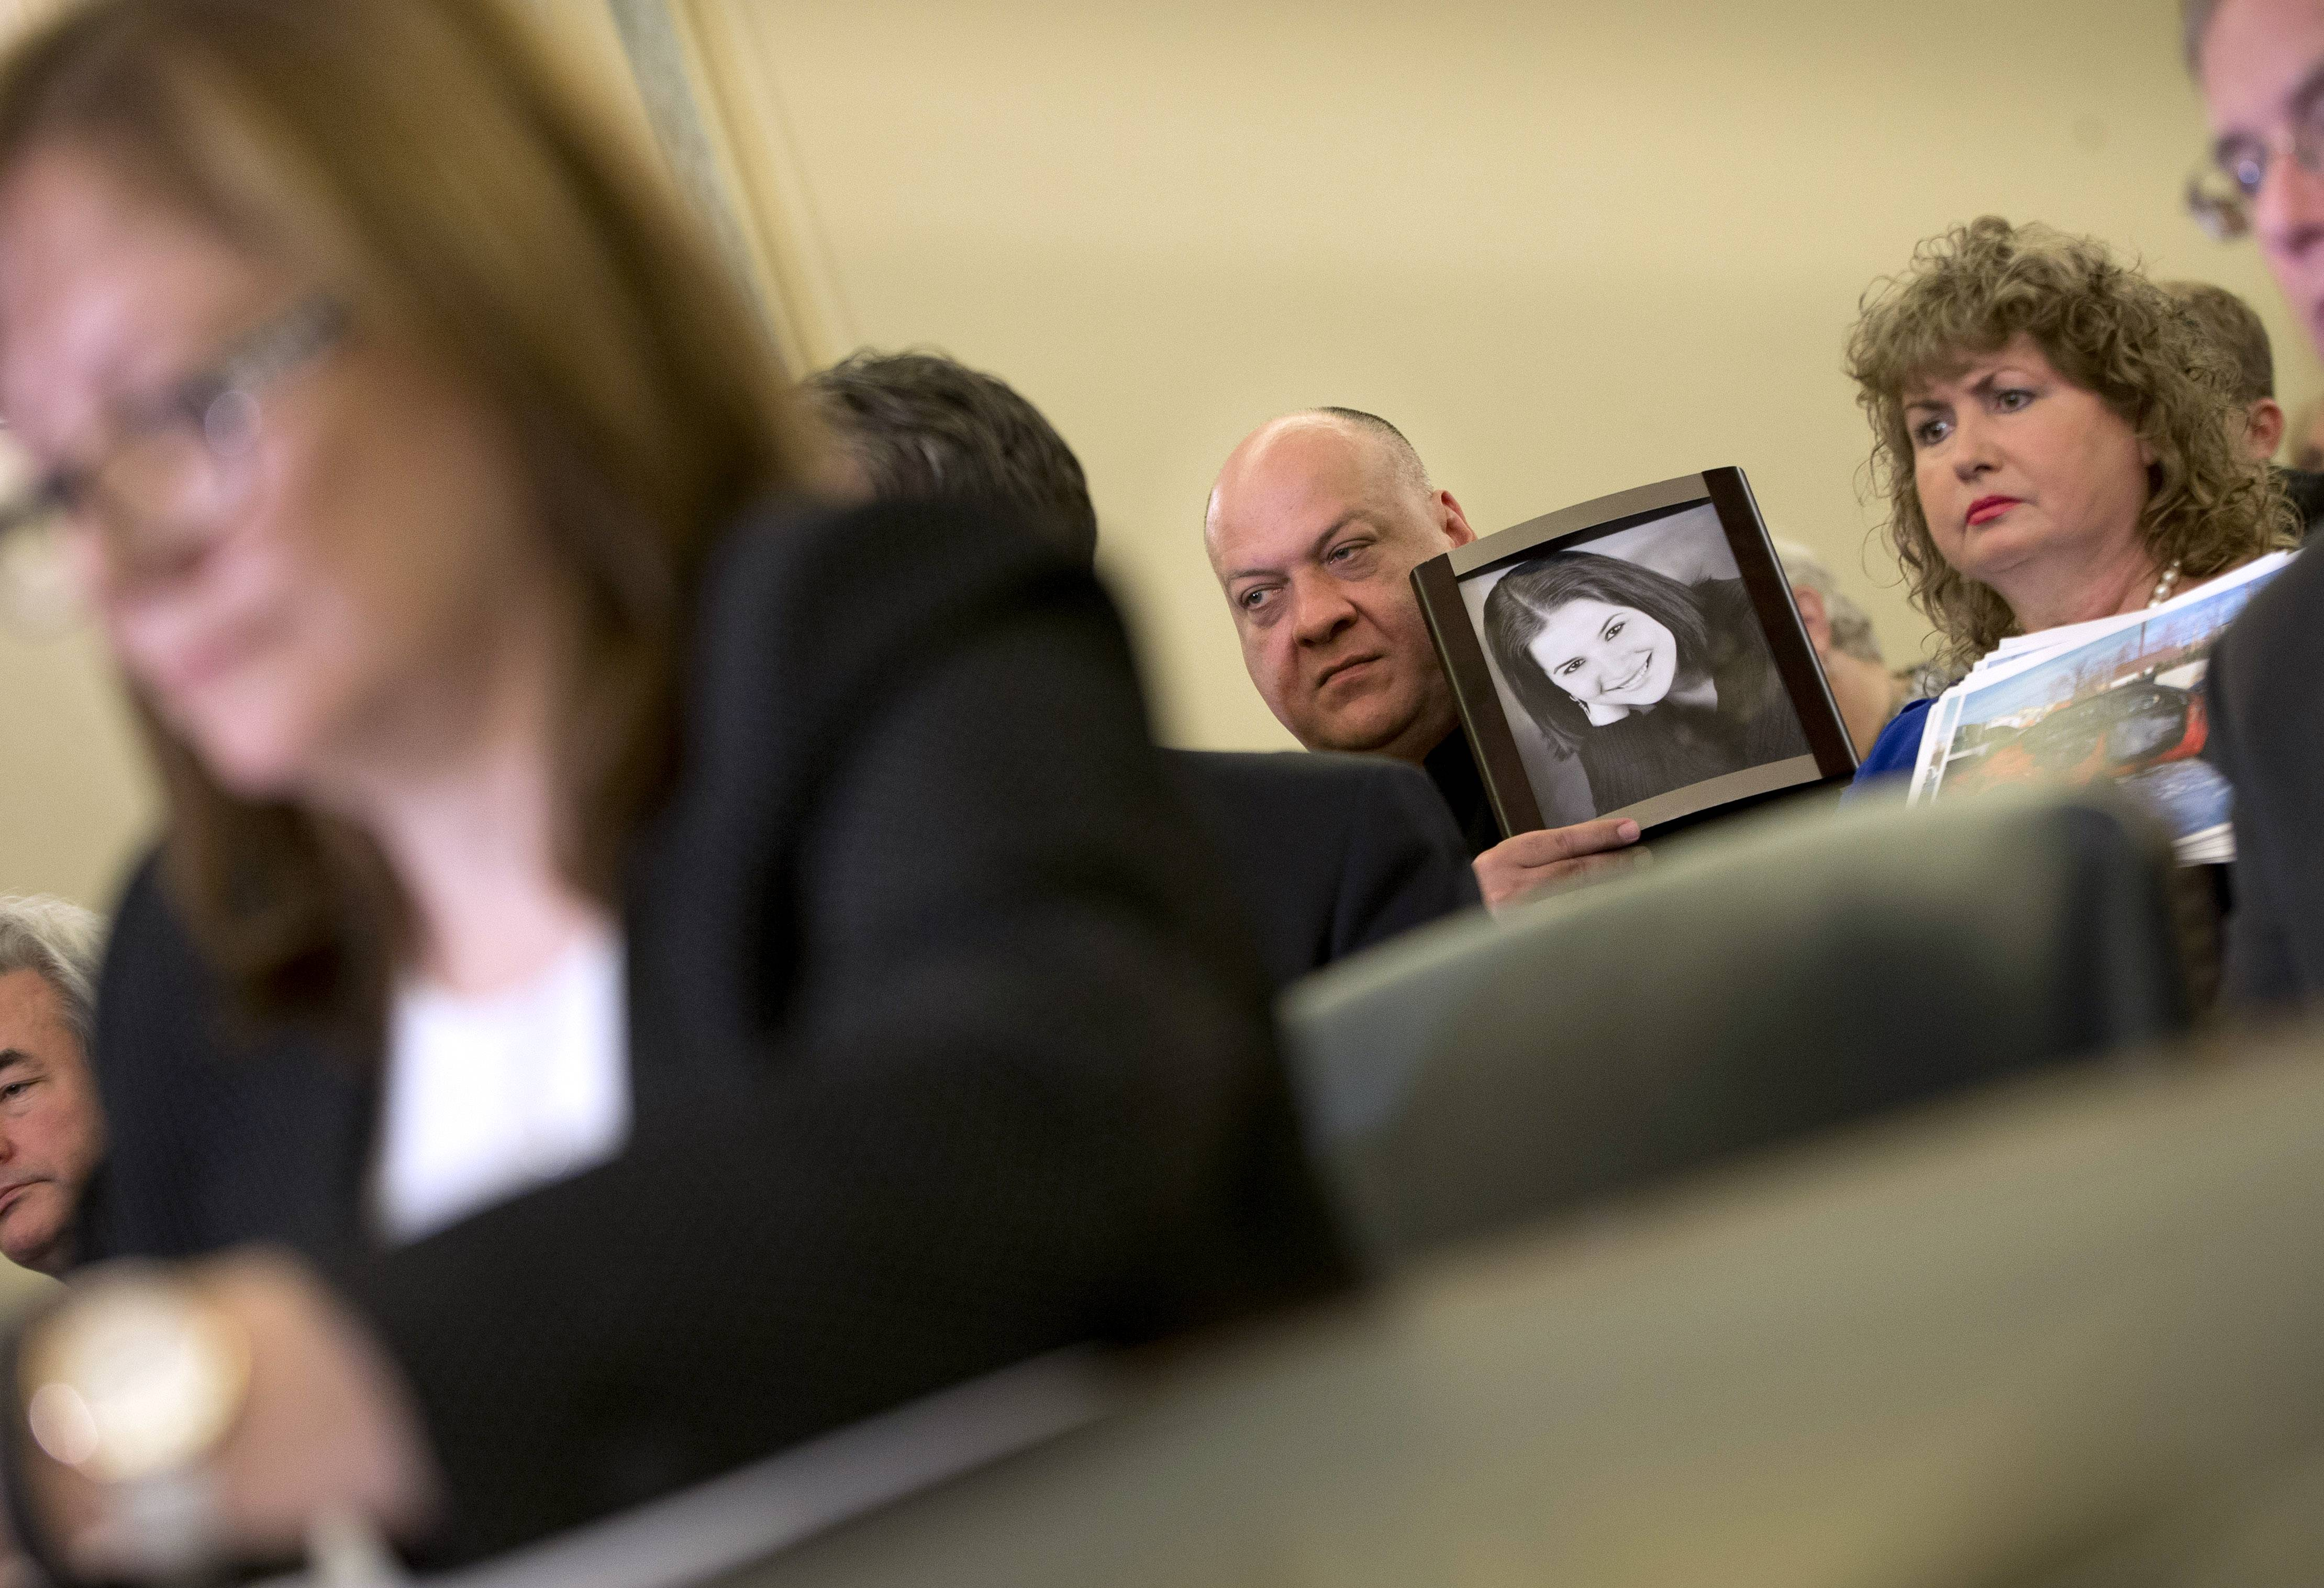 Leo Ruddy, center, and his wife Mary Theresa Ruddy, right, from Scranton, Pa., hold up photographs of their daughter Kelly Erin Ruddy, who died in the crash of a 2005 Chevy Cobalt, as they sit in the audience to listen to testimony by General Motors CEO Mary Barra, left, on Capitol Hill in Washington, Wednesday before the Senate Commerce, Science and Transportation subcommittee.